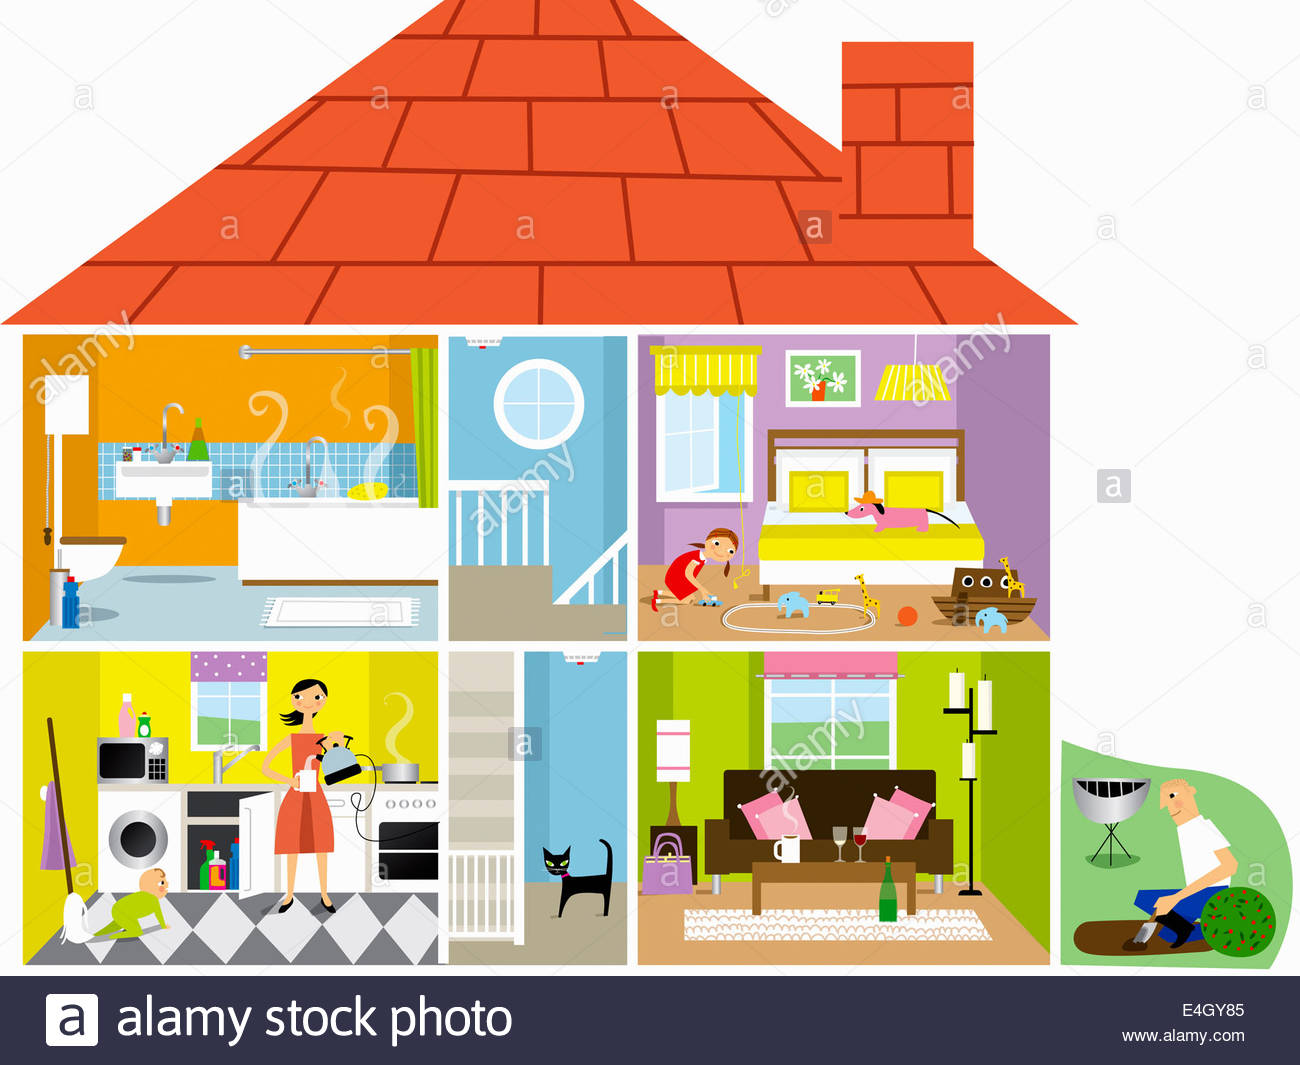 Cross section of family house with potential hazards